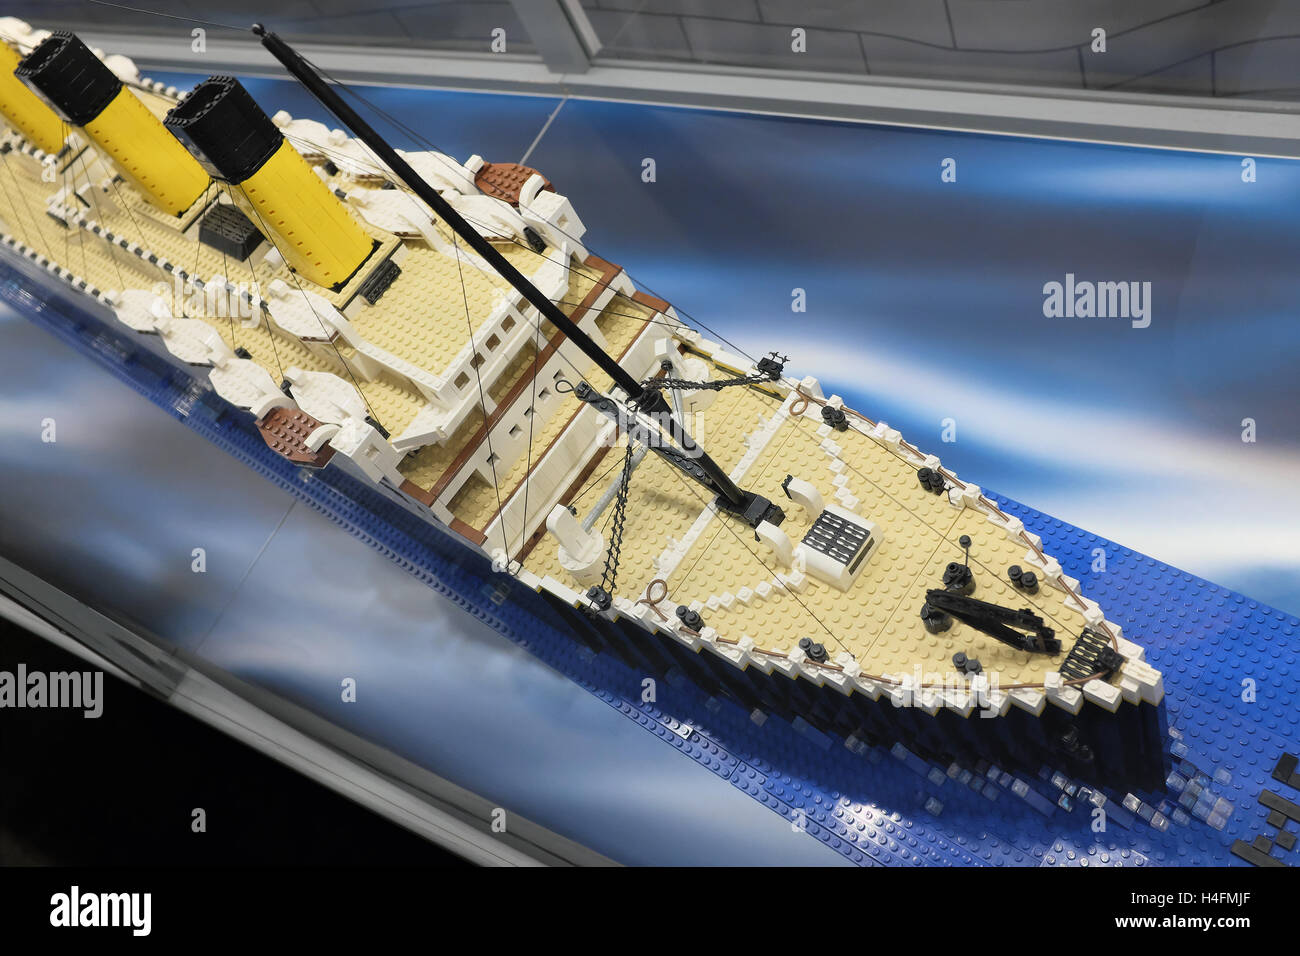 Replica kit model of the Titanic ship made from Lego blocks